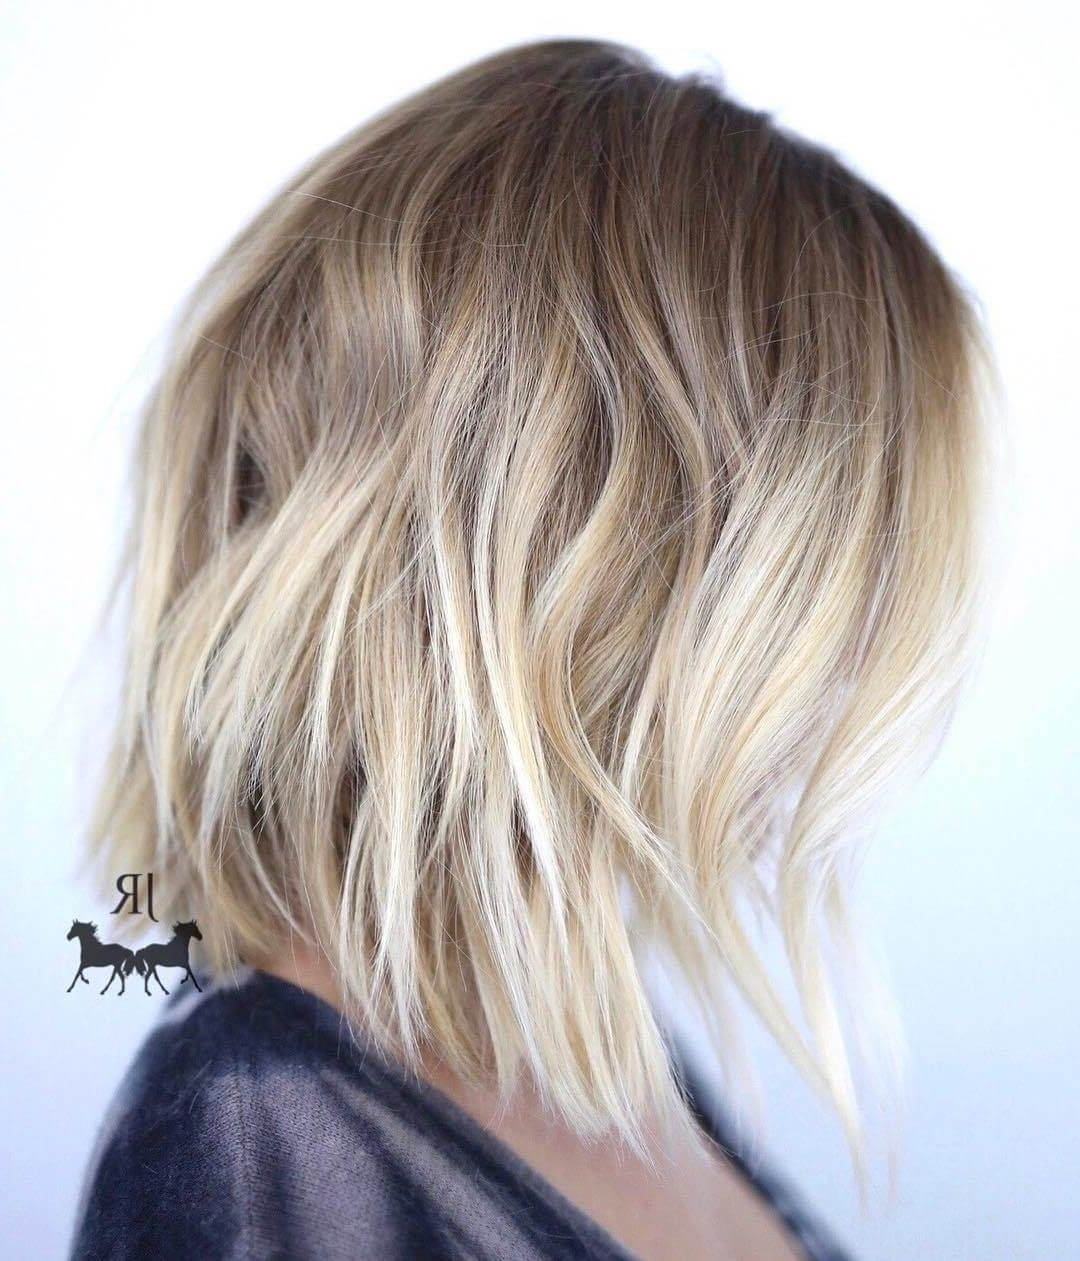 Latest All Over Cool Blonde Hairstyles Intended For 50 Fresh Short Blonde Hair Ideas To Update Your Style In (View 5 of 20)